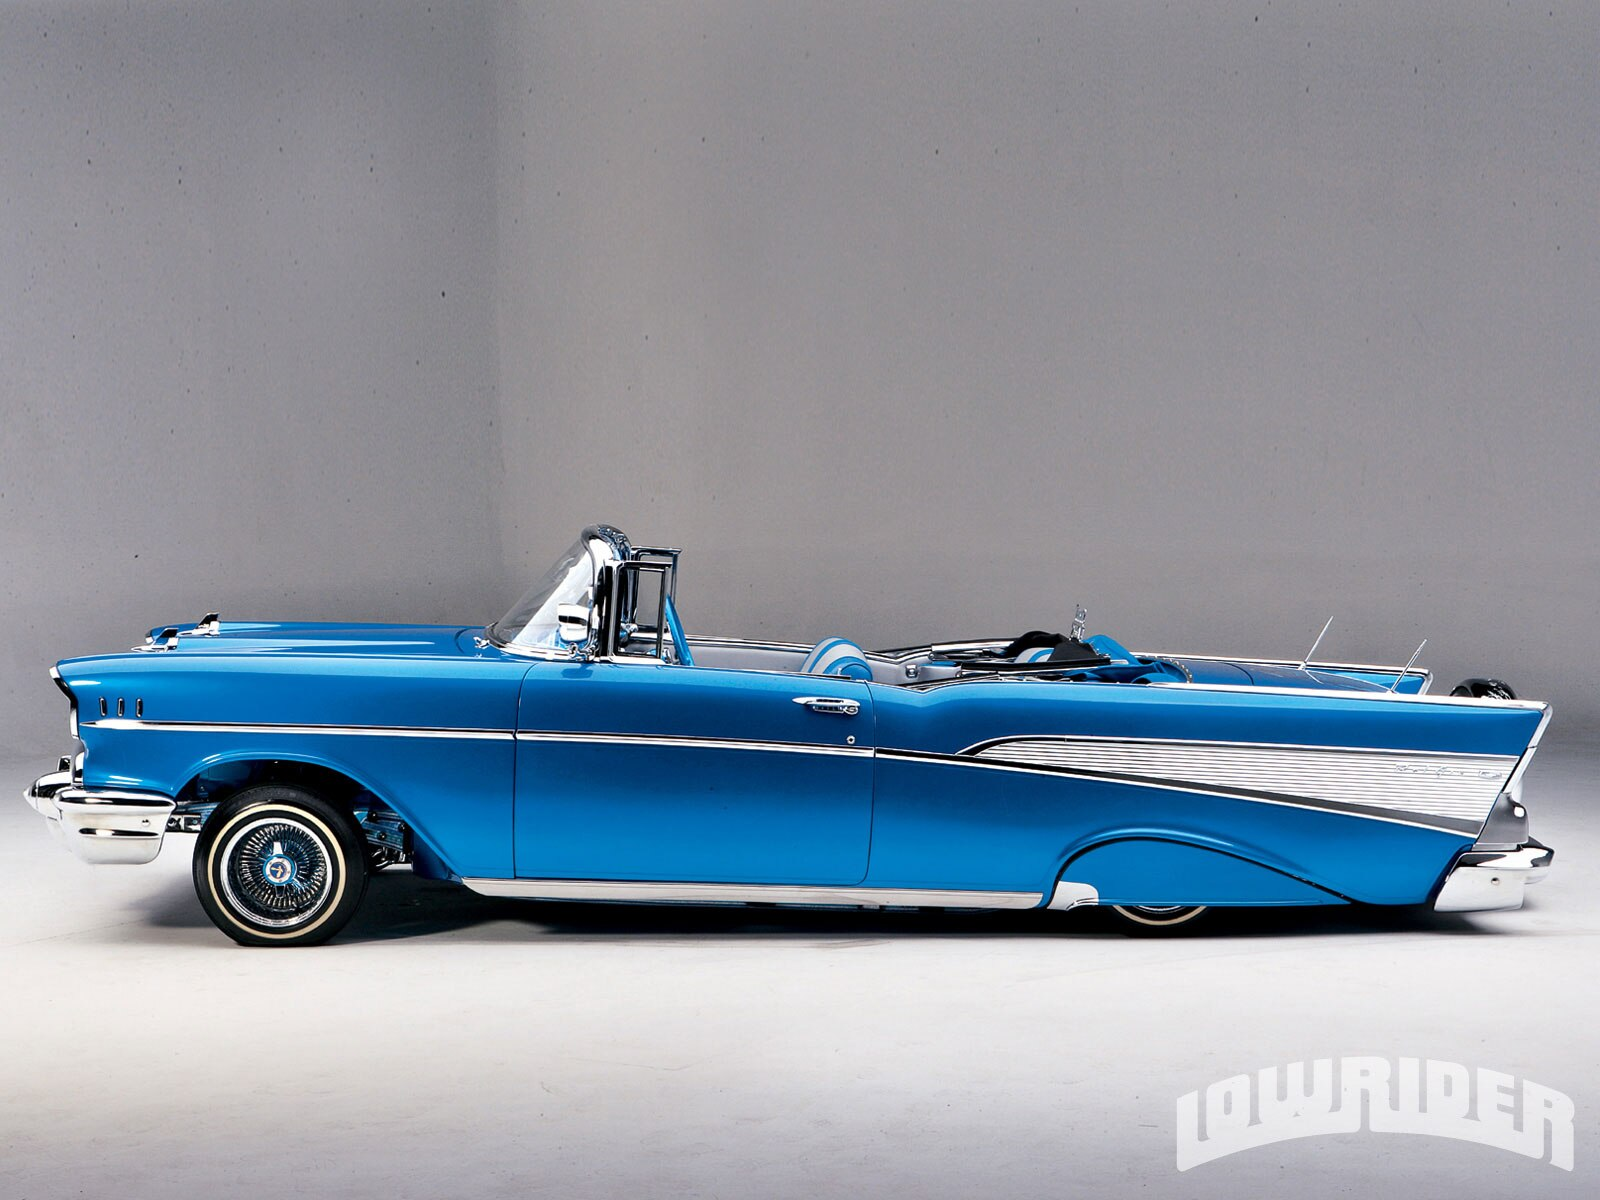 0808-lrmp-04-o-1957-chevrolet-bel-air-convertible-driver-side-profile1